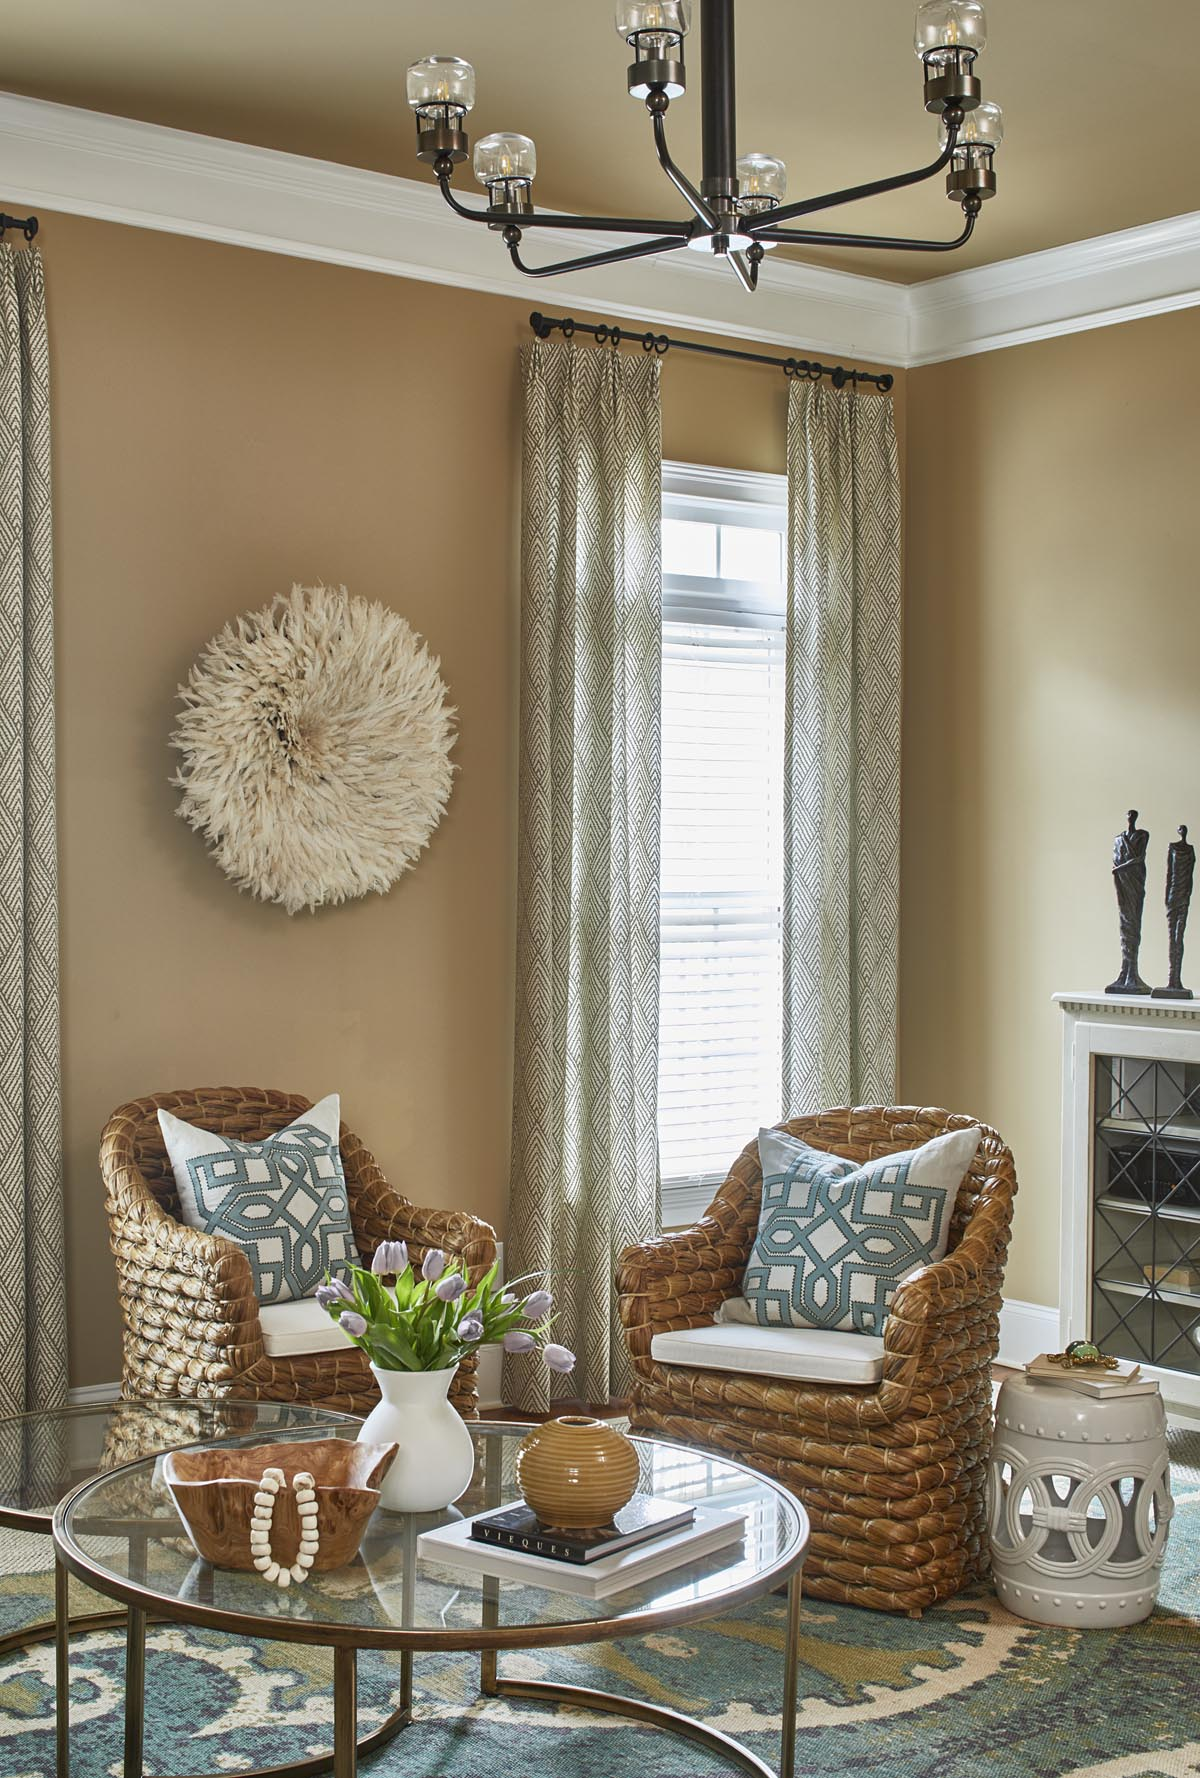 Erika_Ward_Livingroom5 Home Improvement Tips for the New Year from Black Southern Belle Design Mavens